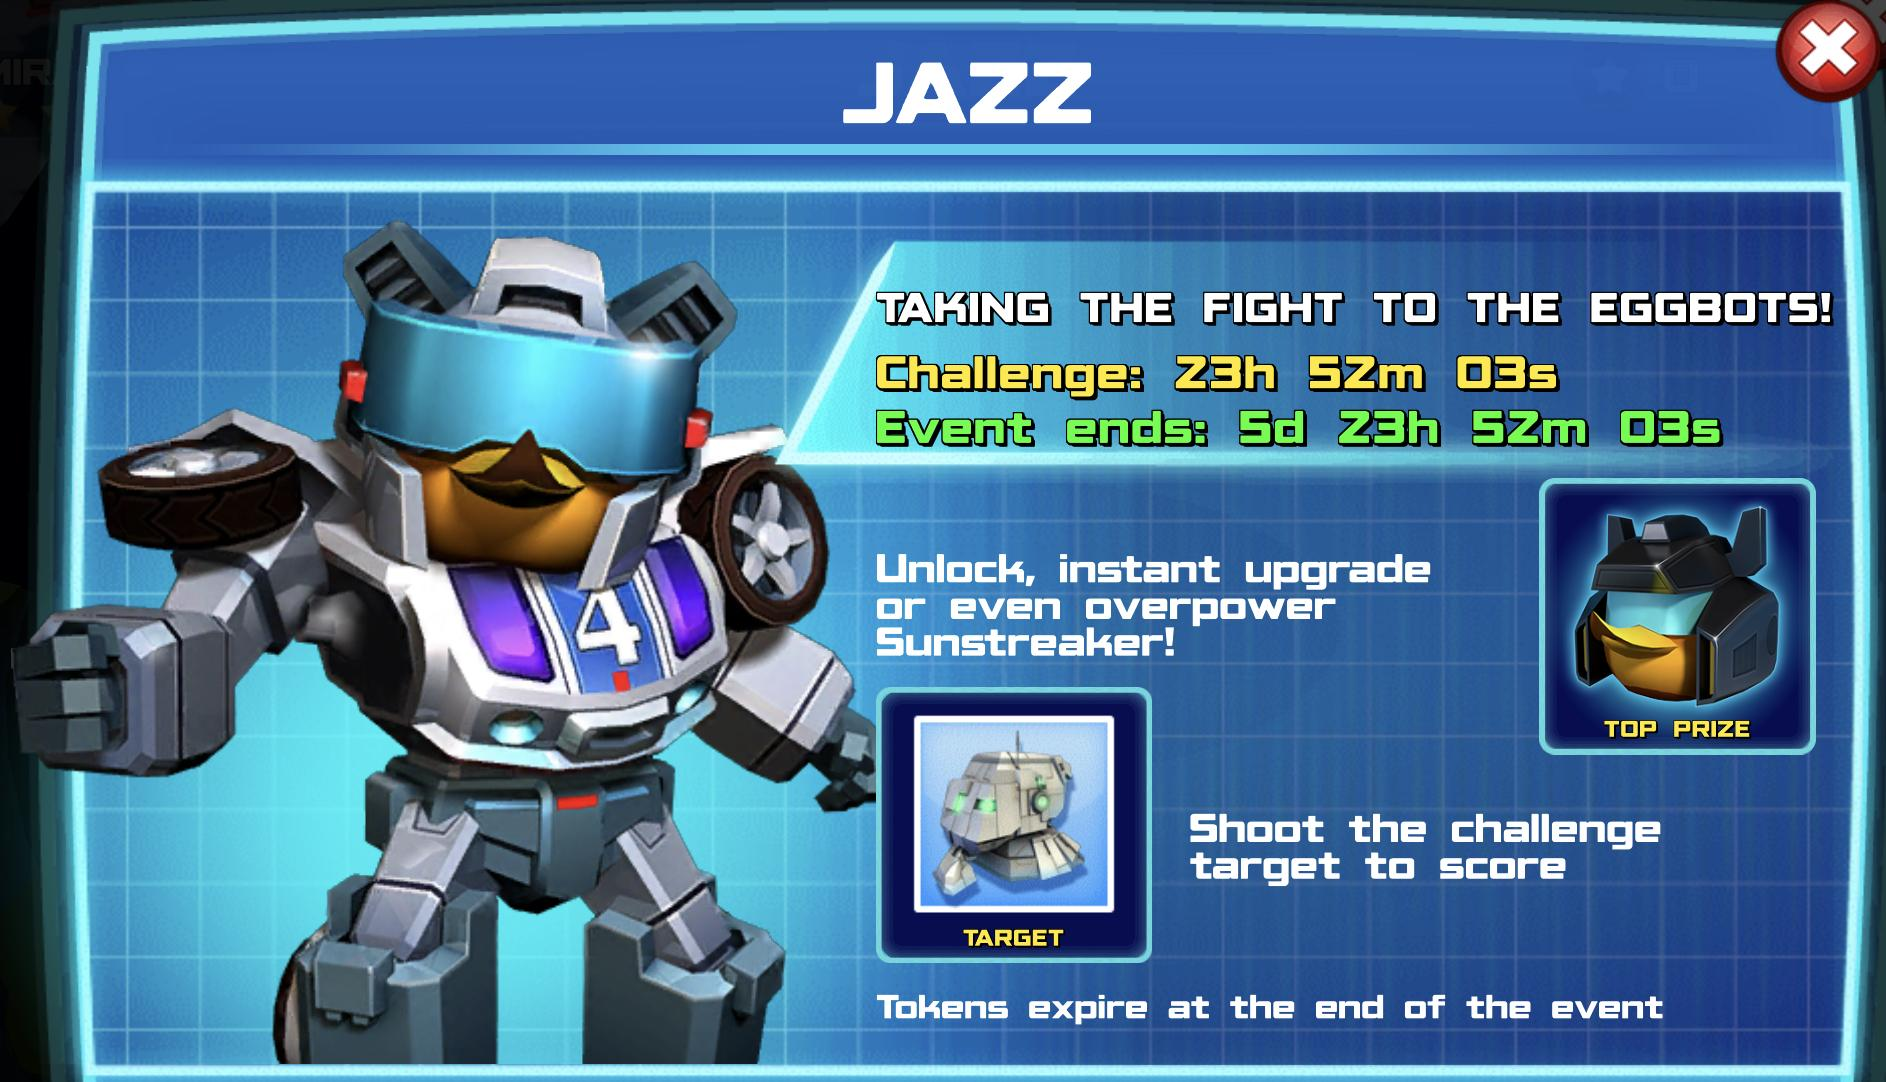 The event banner for Jazz